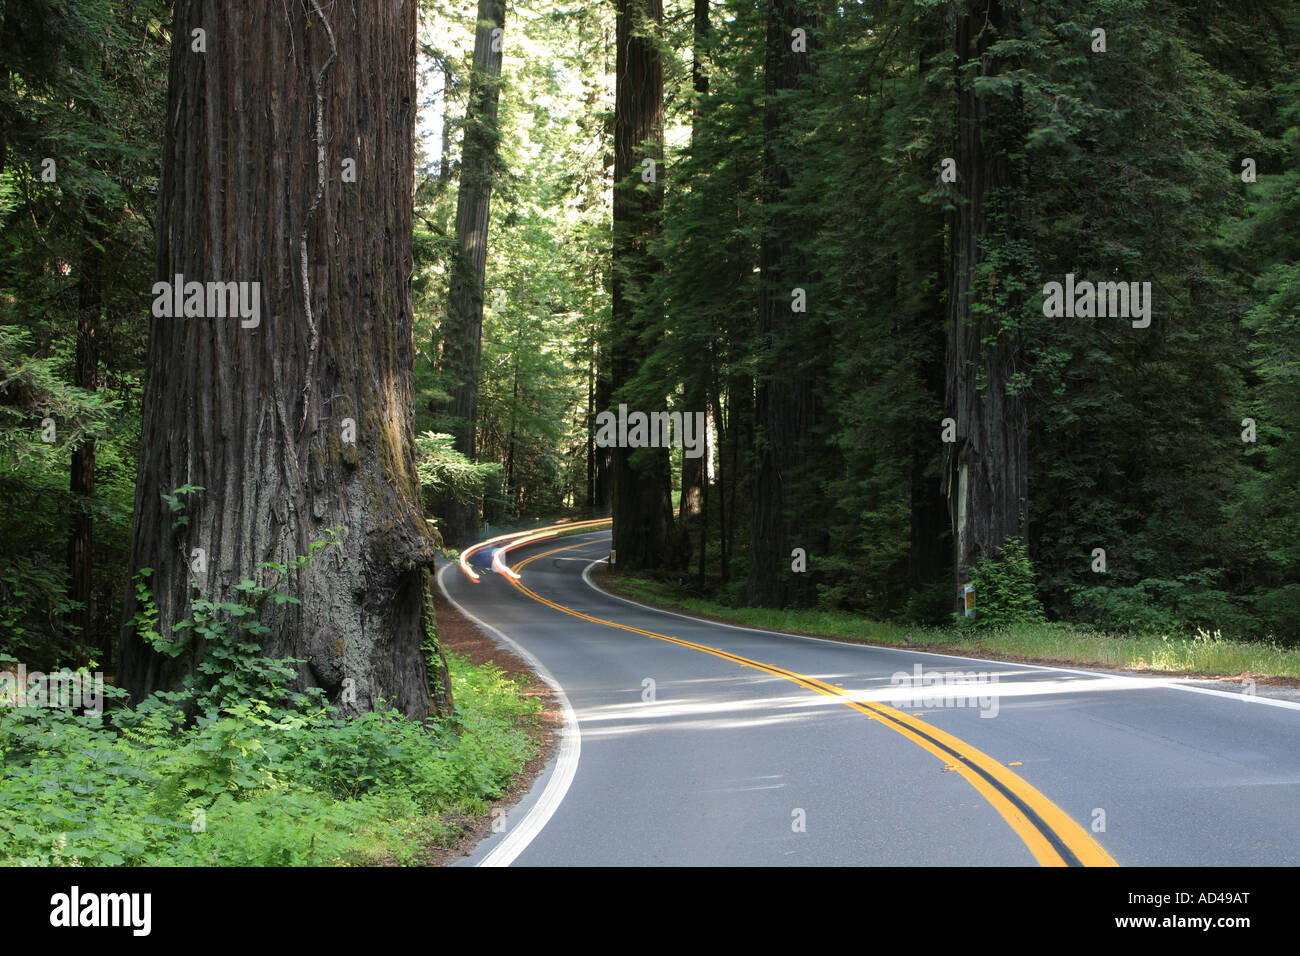 Avenue of the Giants scenic byway through the tall Redwoods (Sequoia sempervirens), California, USA - Stock Image